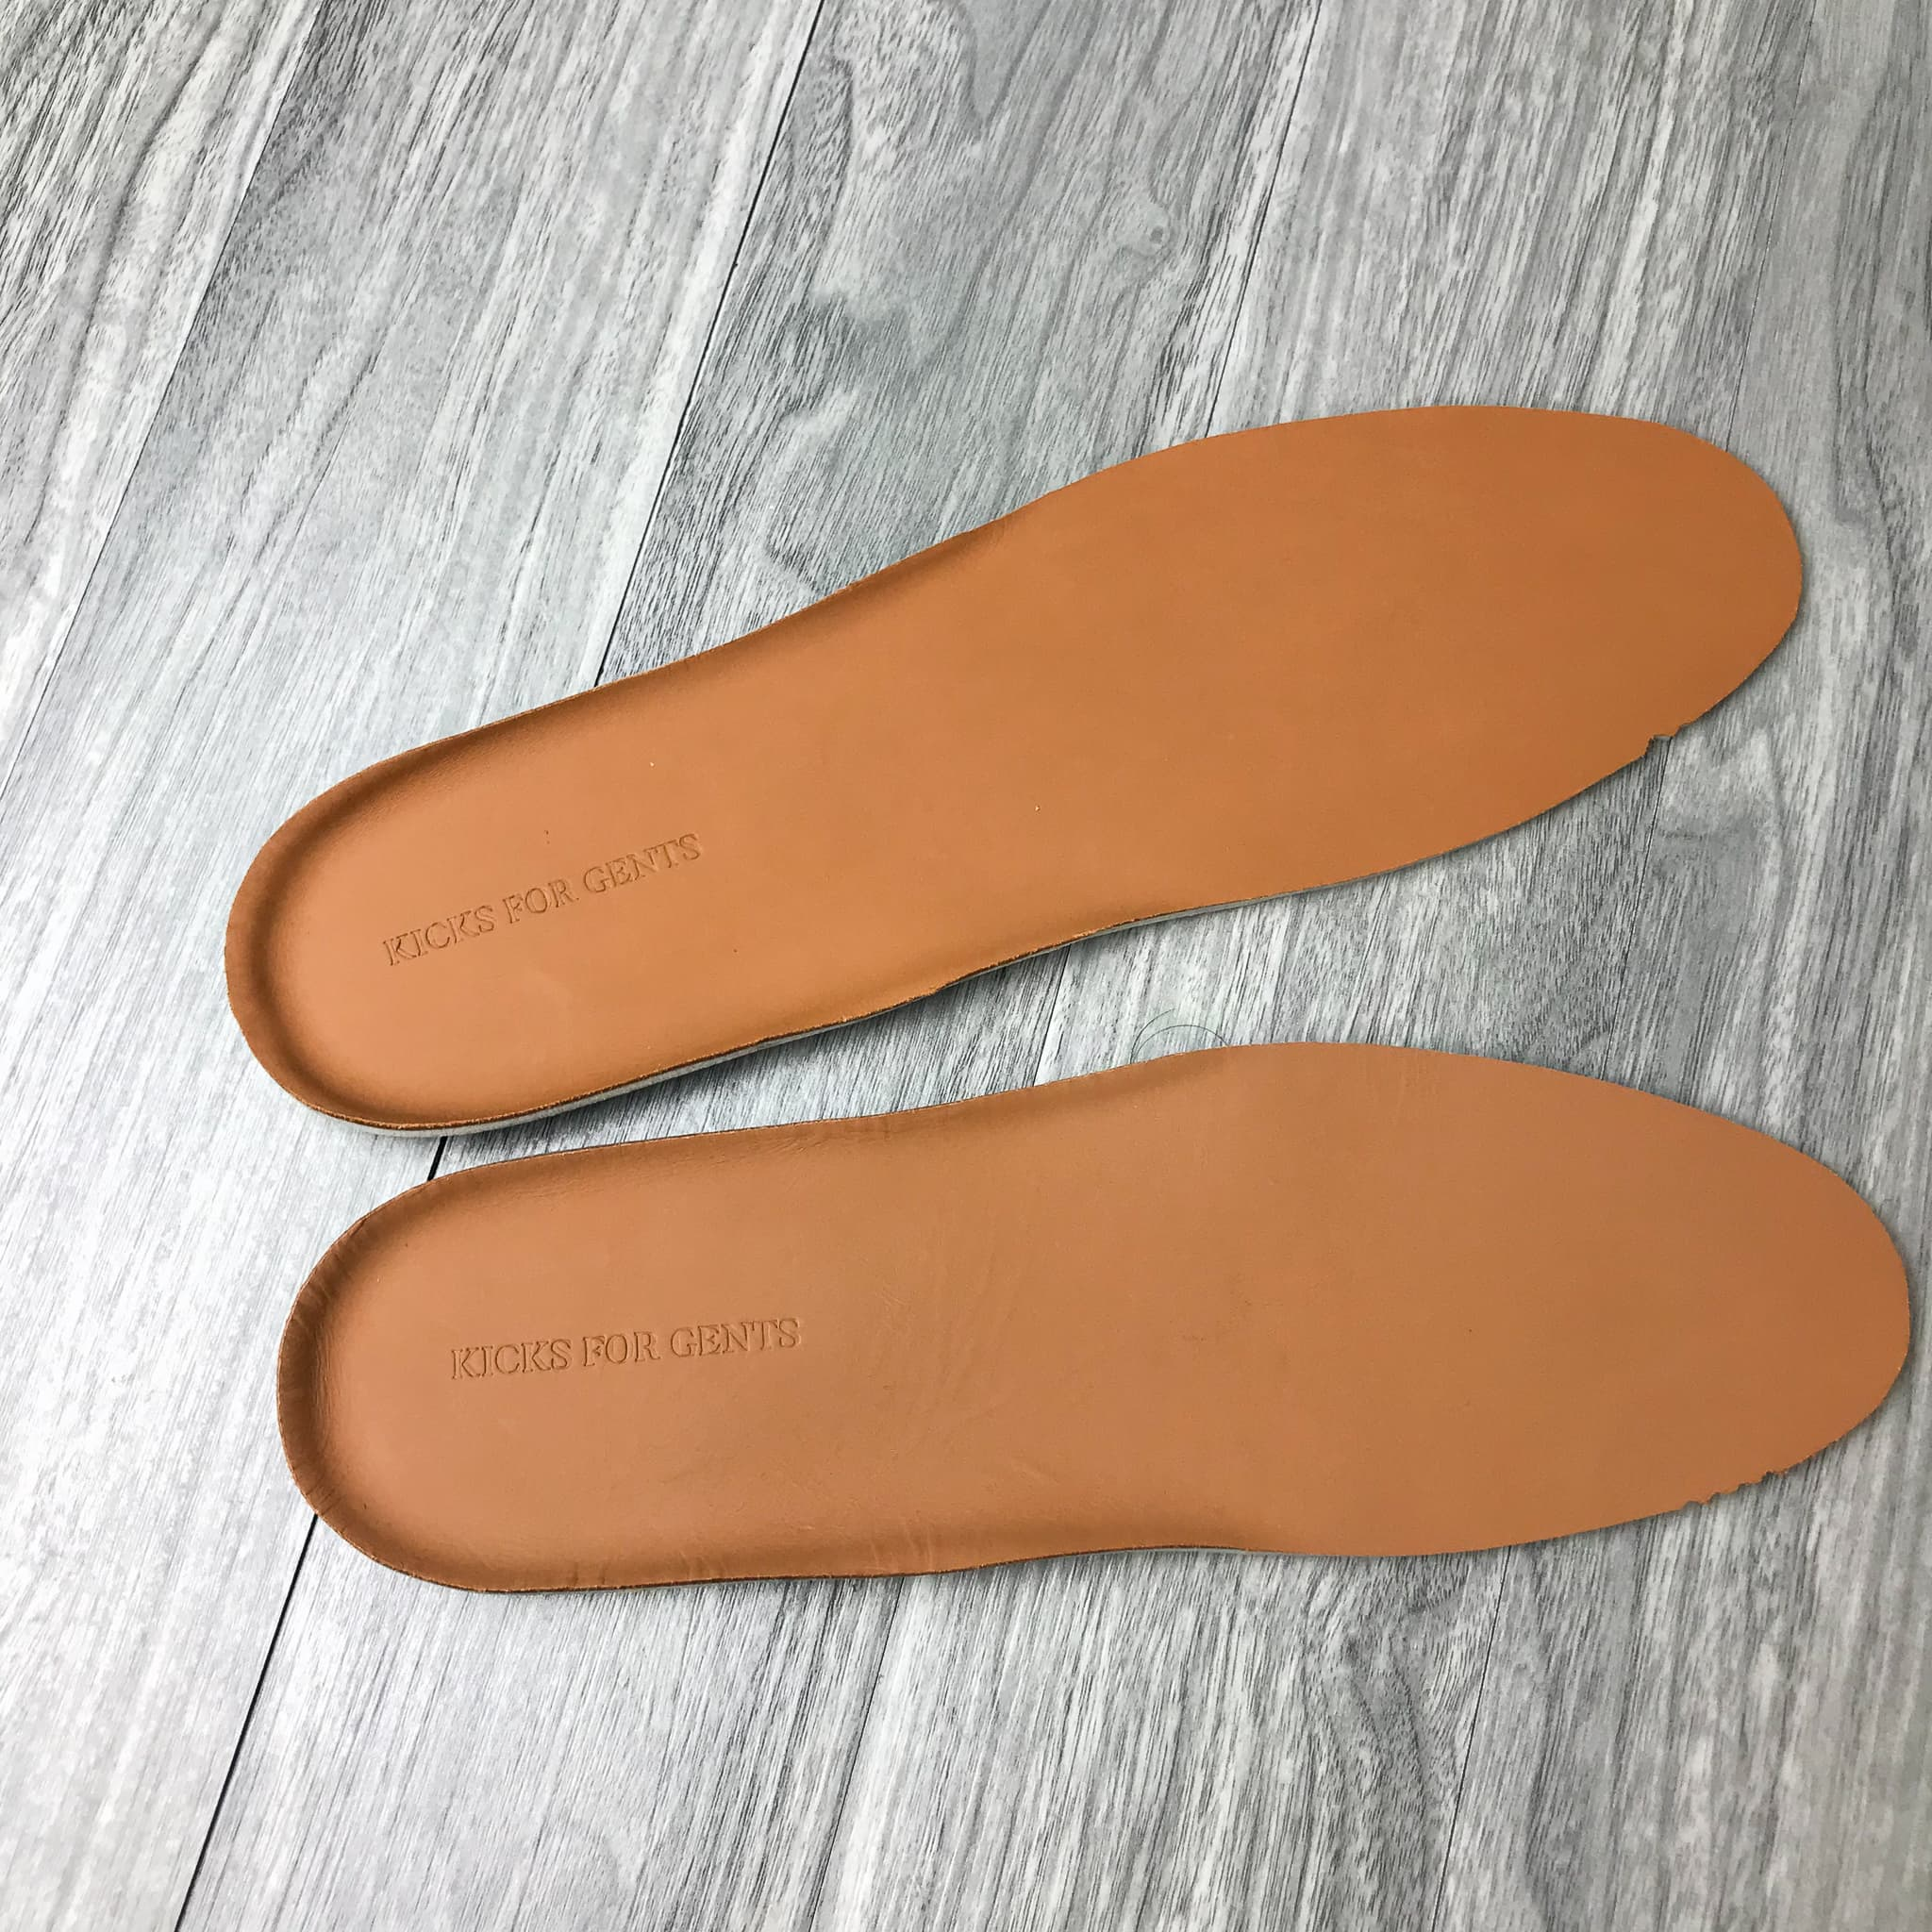 KFG Leather Sneaker Insole -Tan - Kicks For Gents - Insole - Insole